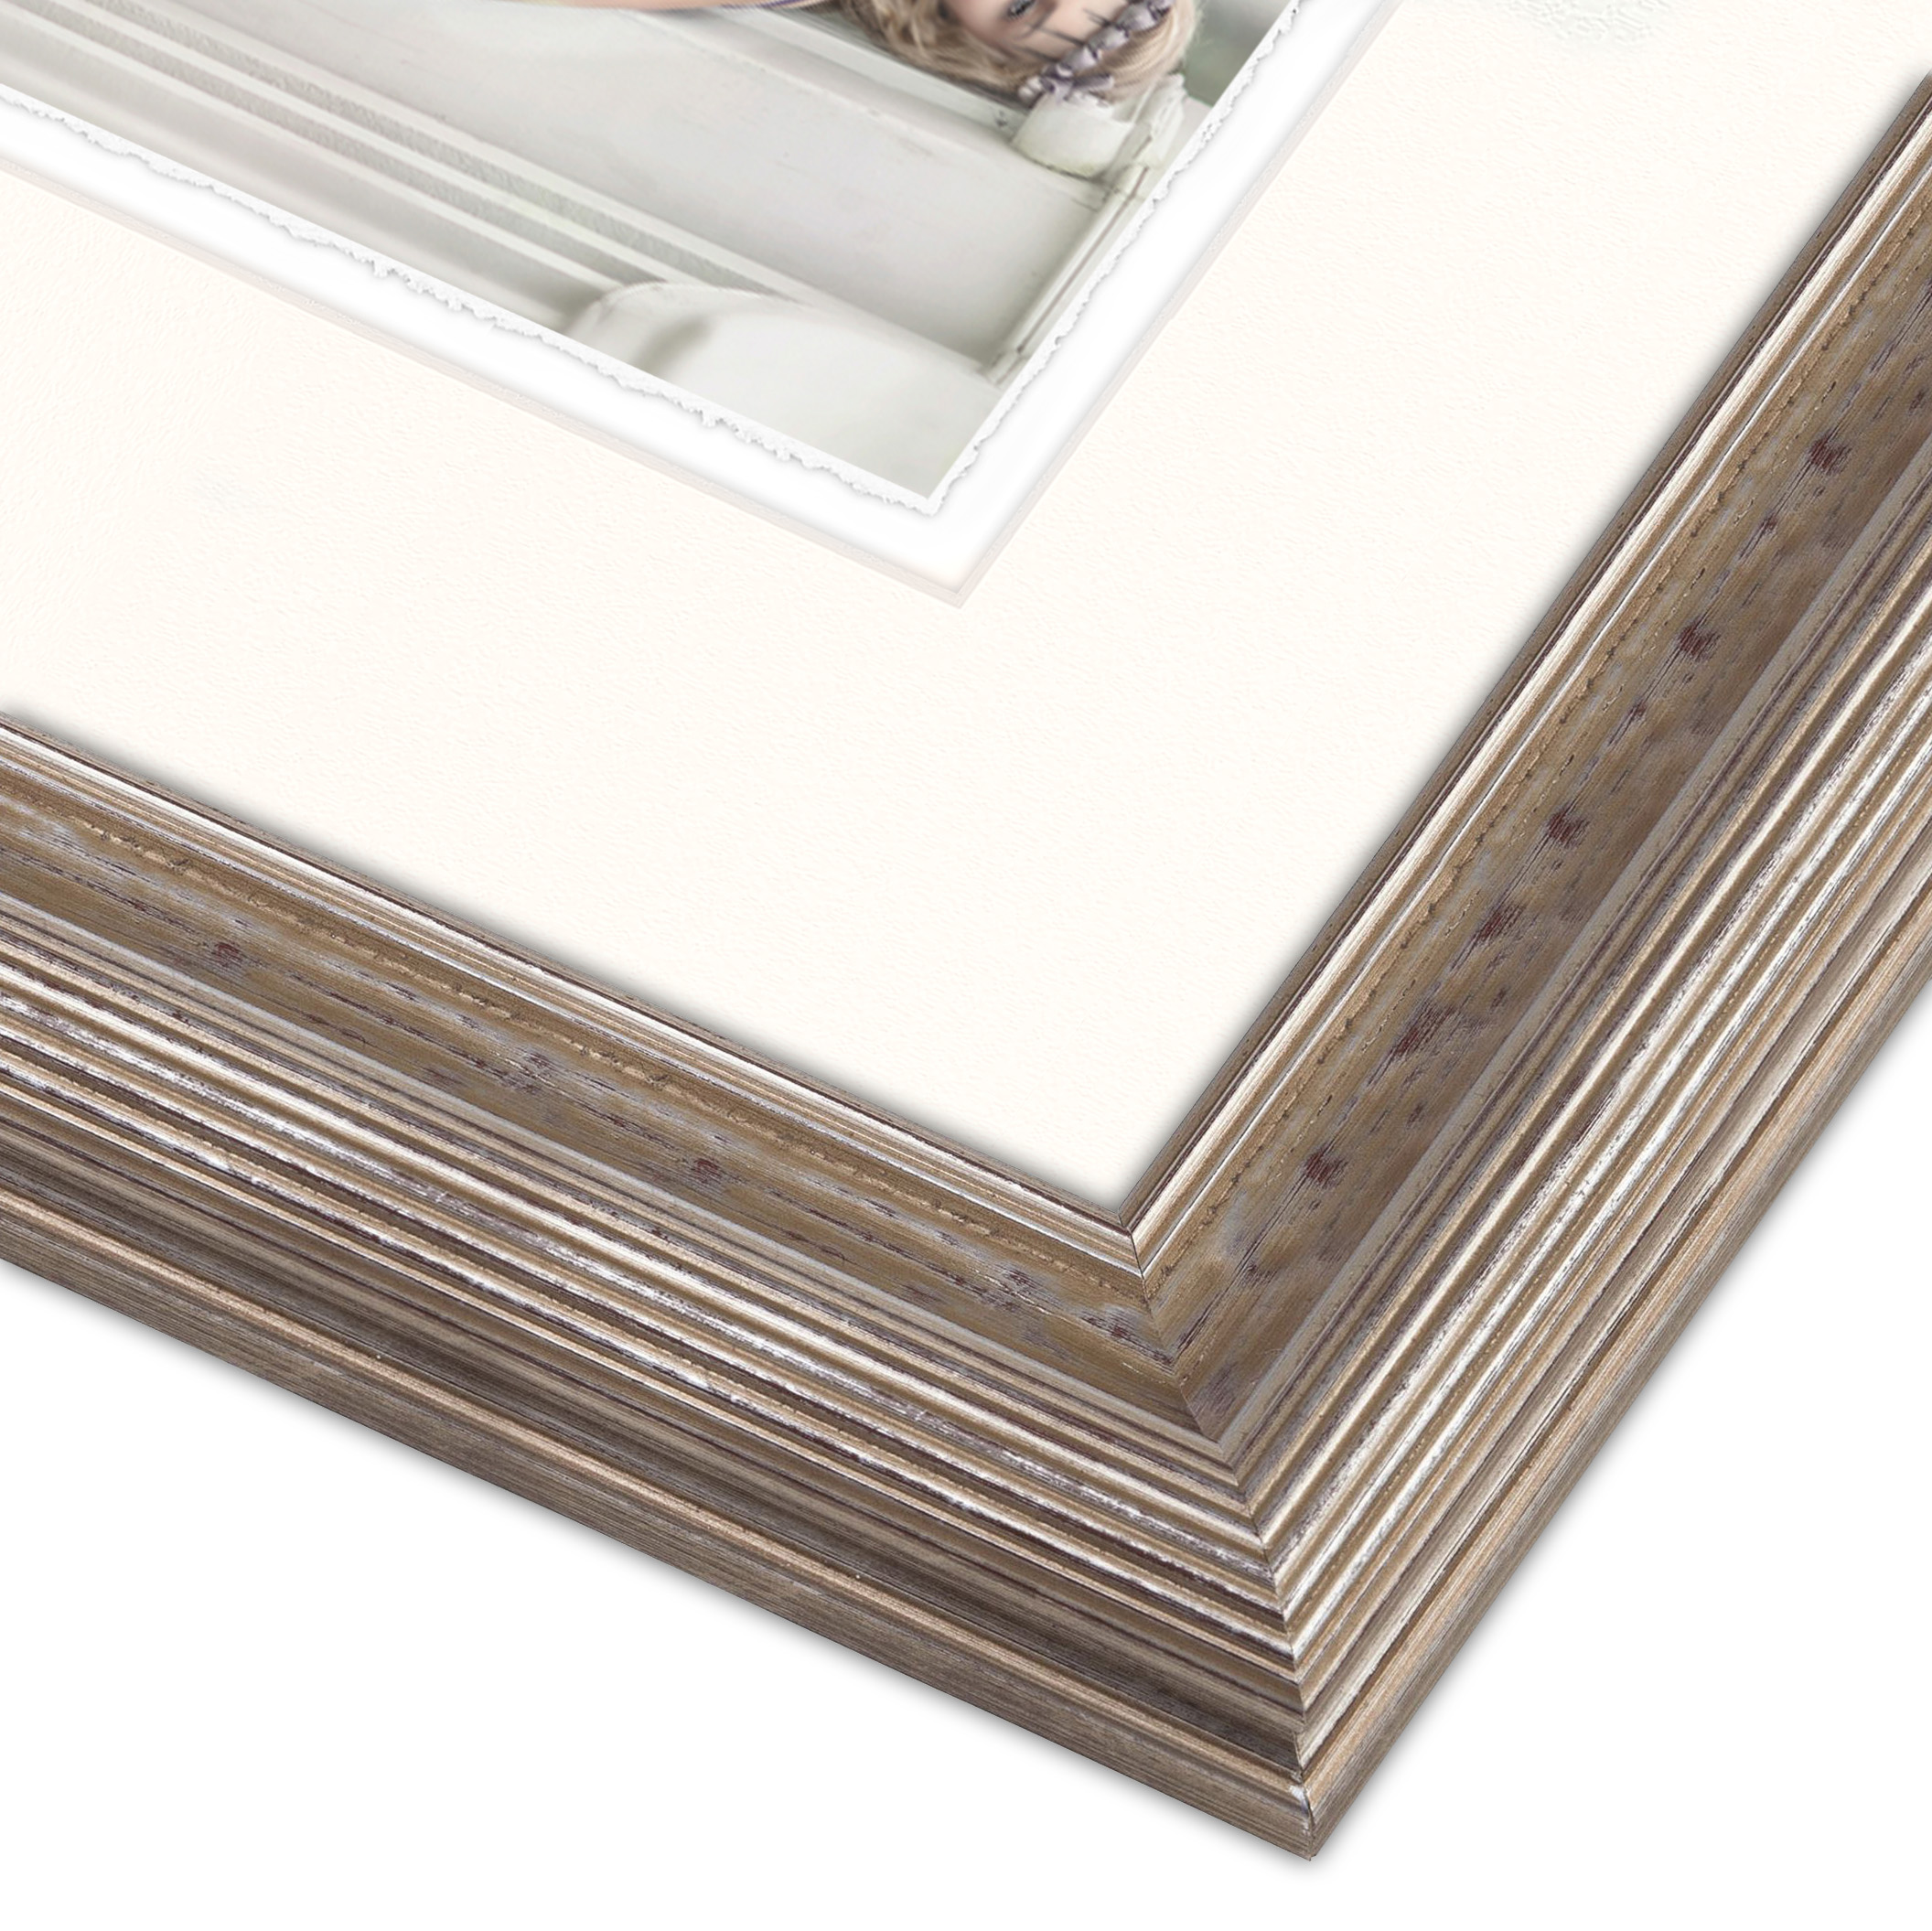 A beautiful wood carved frame from the Cate Scaglione Frame Collection.